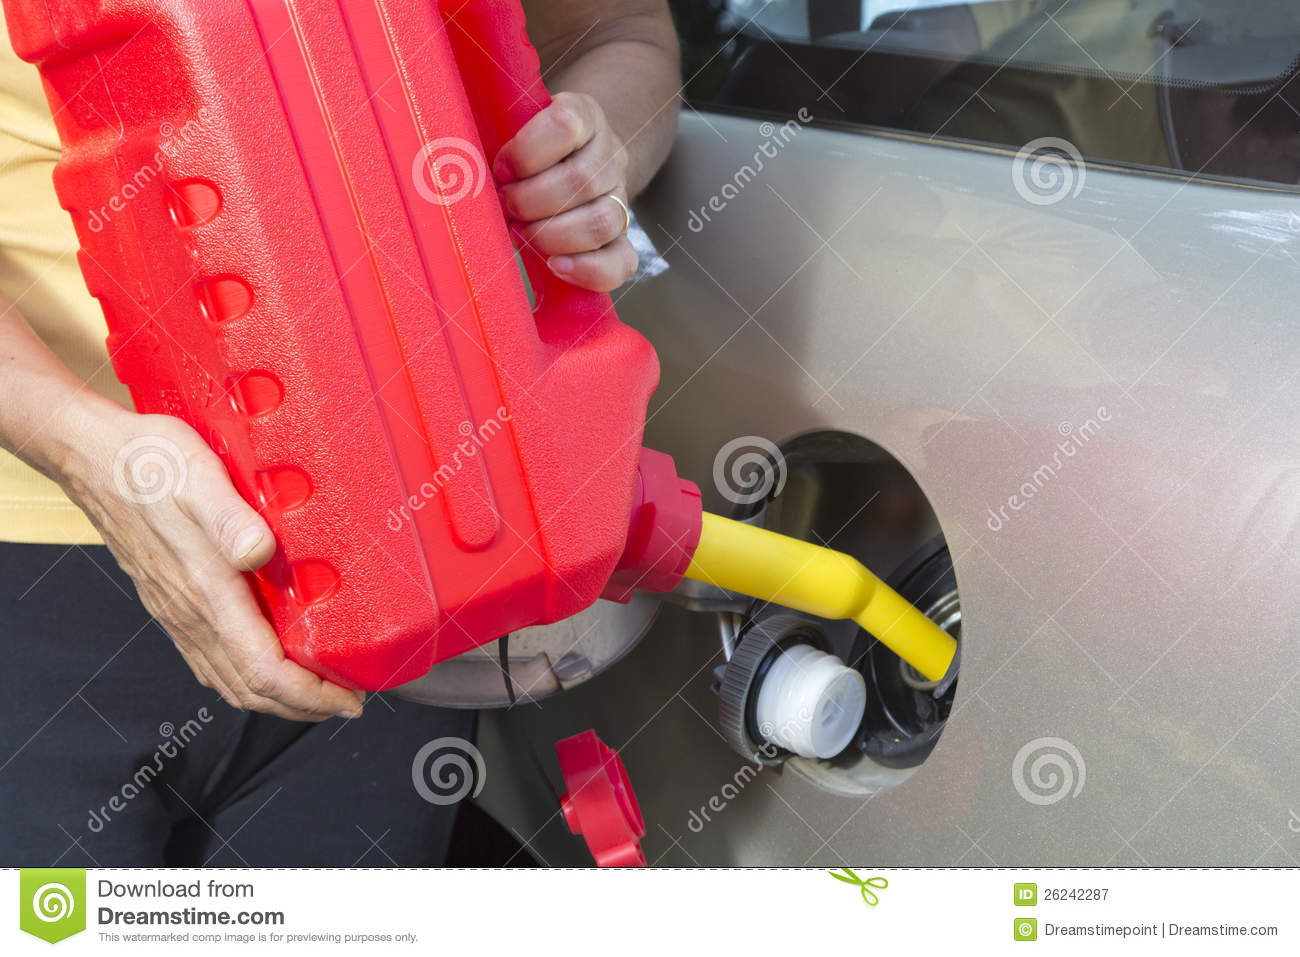 Adding fuel in car with Red Plastic Gas can